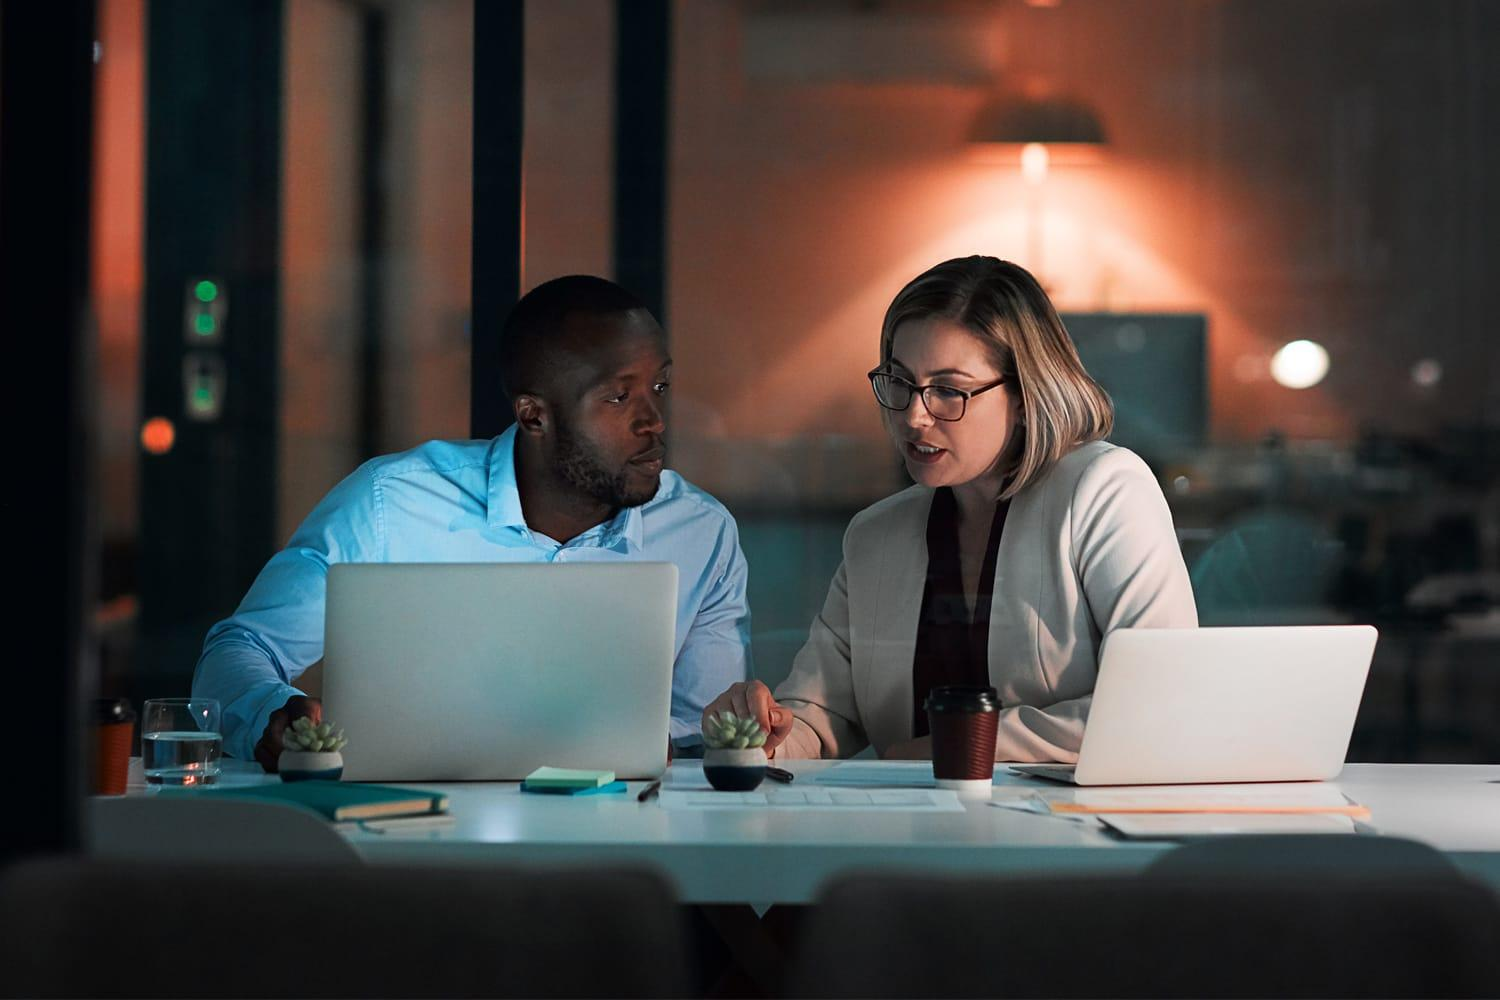 Man and woman looking at laptops in office